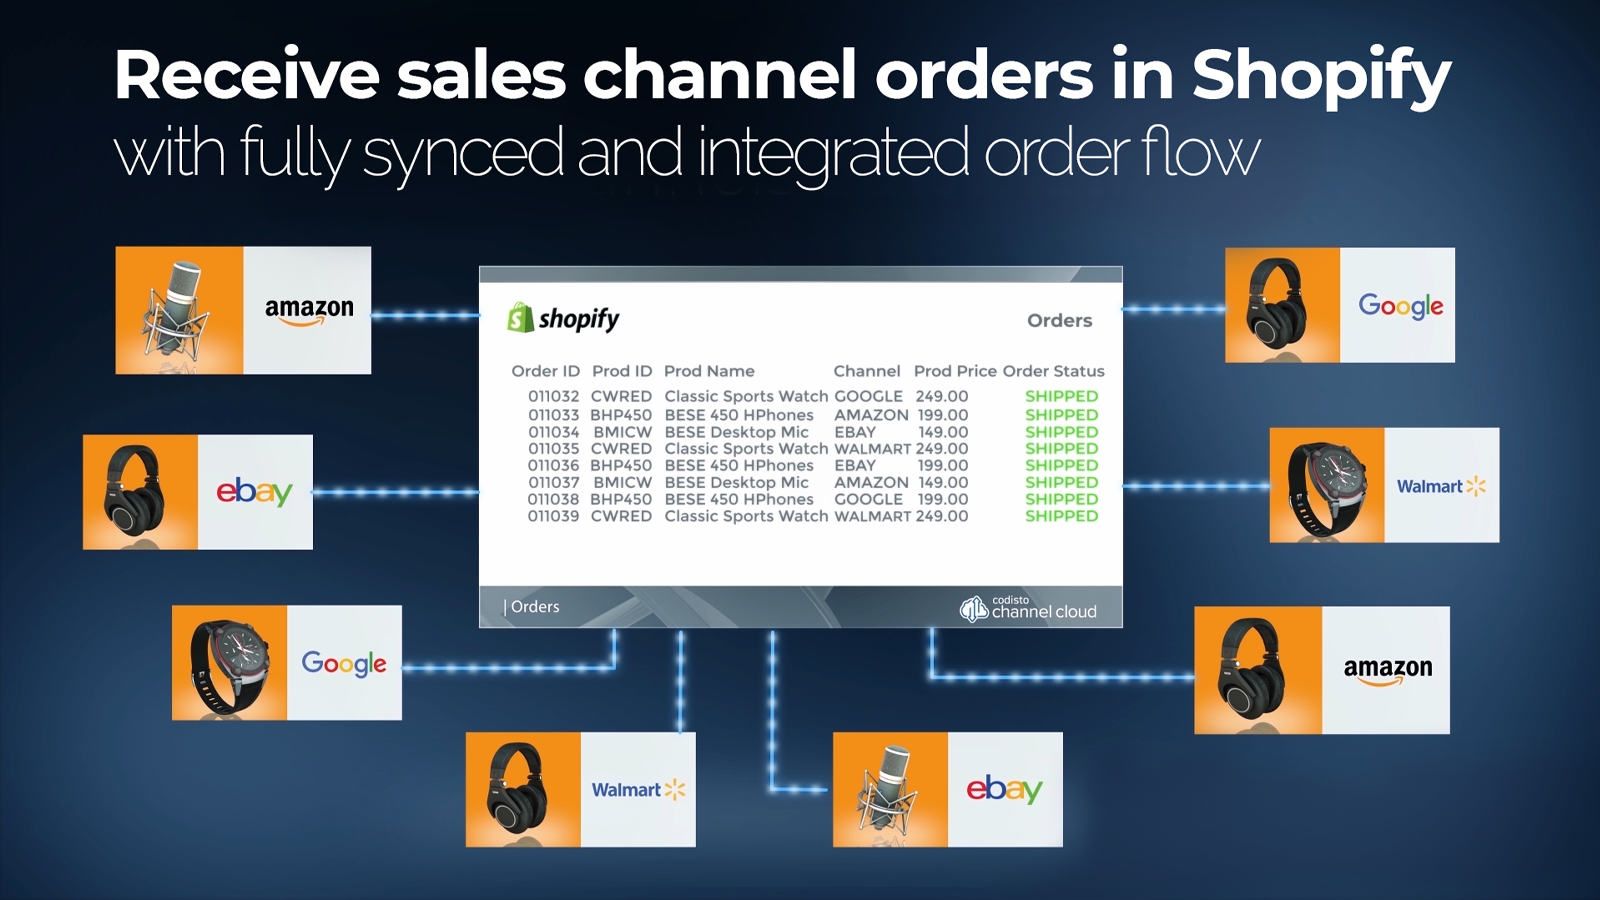 receive and fulfil sales channel orders in shopify